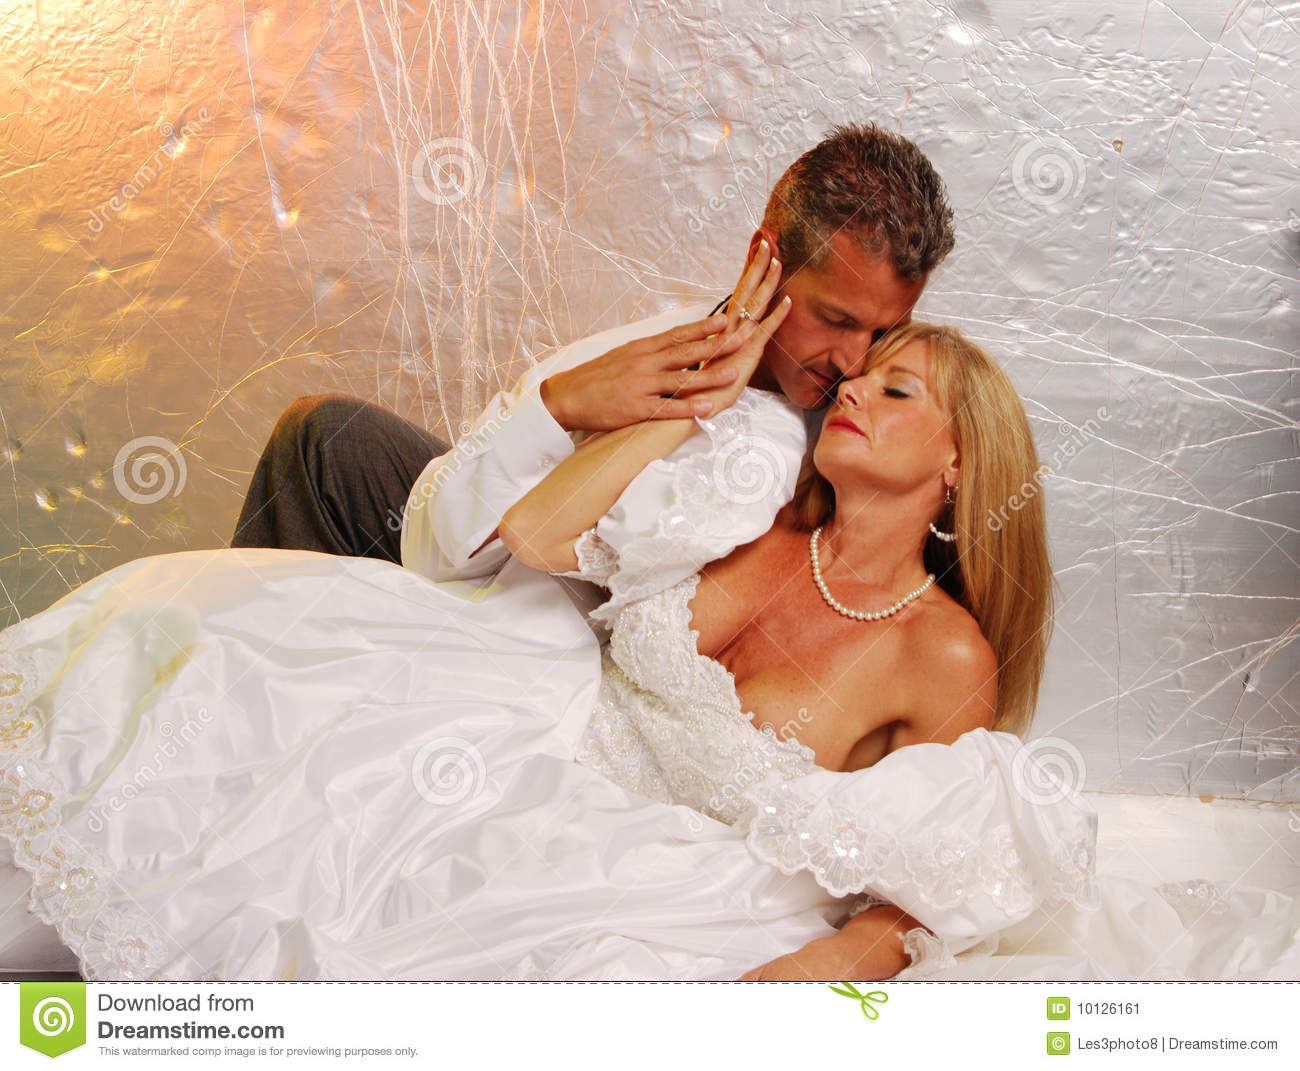 Romance with a married